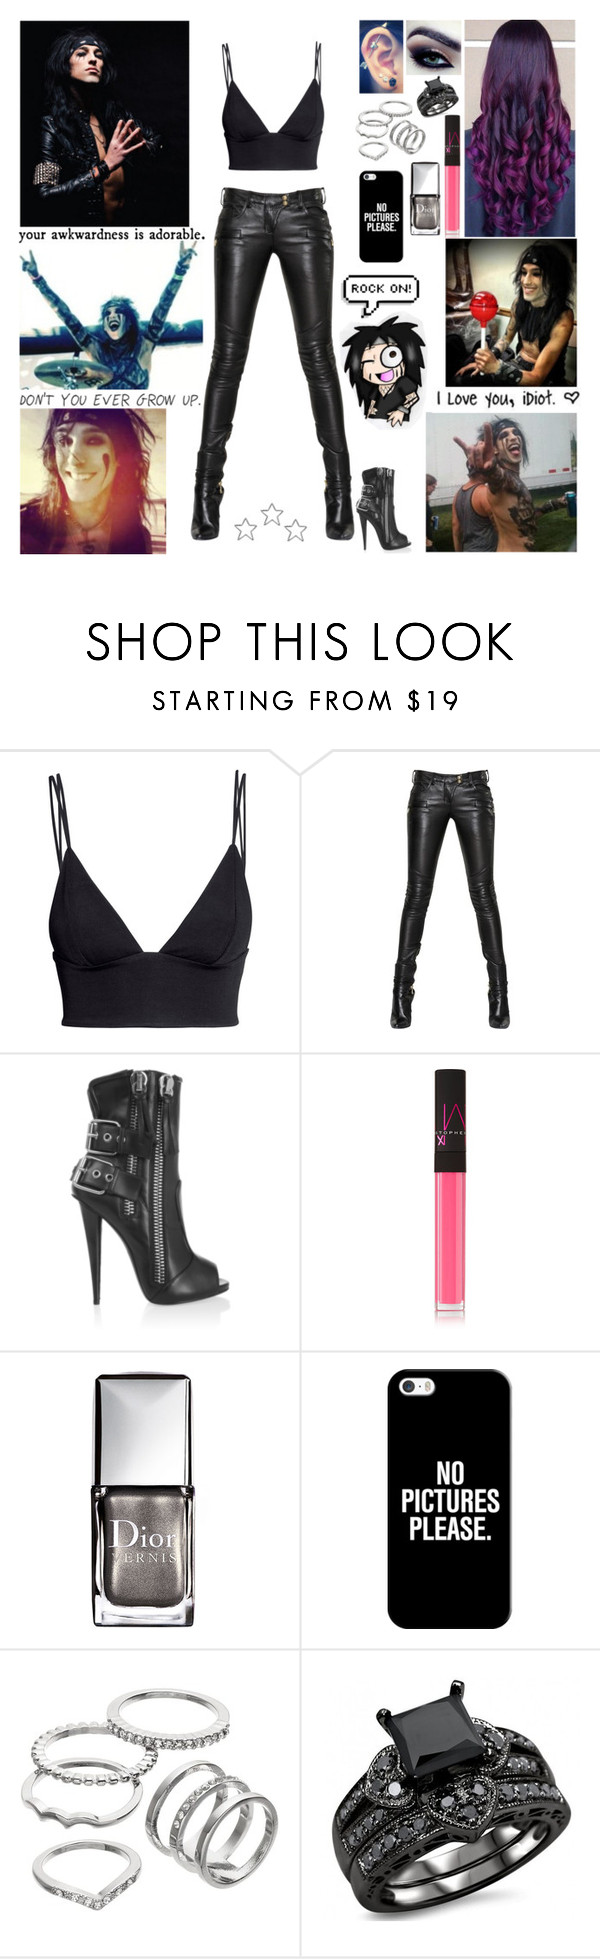 """Happy Birthday Christian! At His Birthday Party."" by blueknight ❤ liked on Polyvore featuring H&M, Balmain, Giuseppe Zanotti, NARS Cosmetics, Christian Dior, Casetify, Apt. 9 and CC"